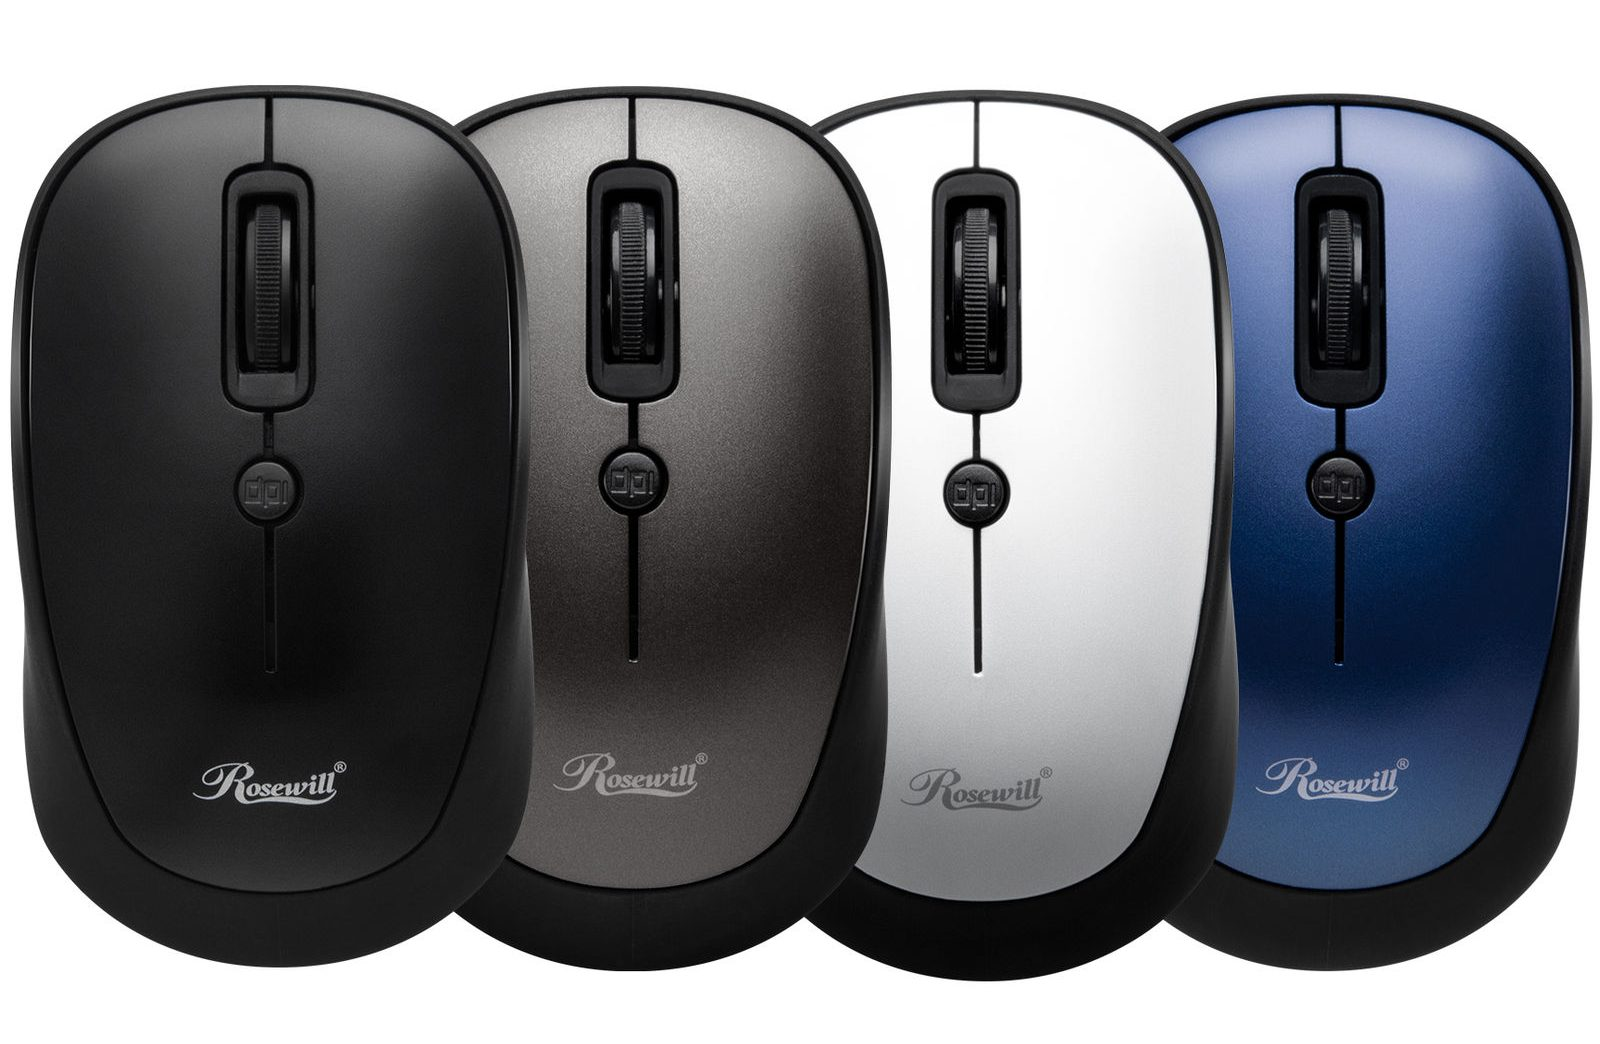 Rosewill Wireless Office Mice Series